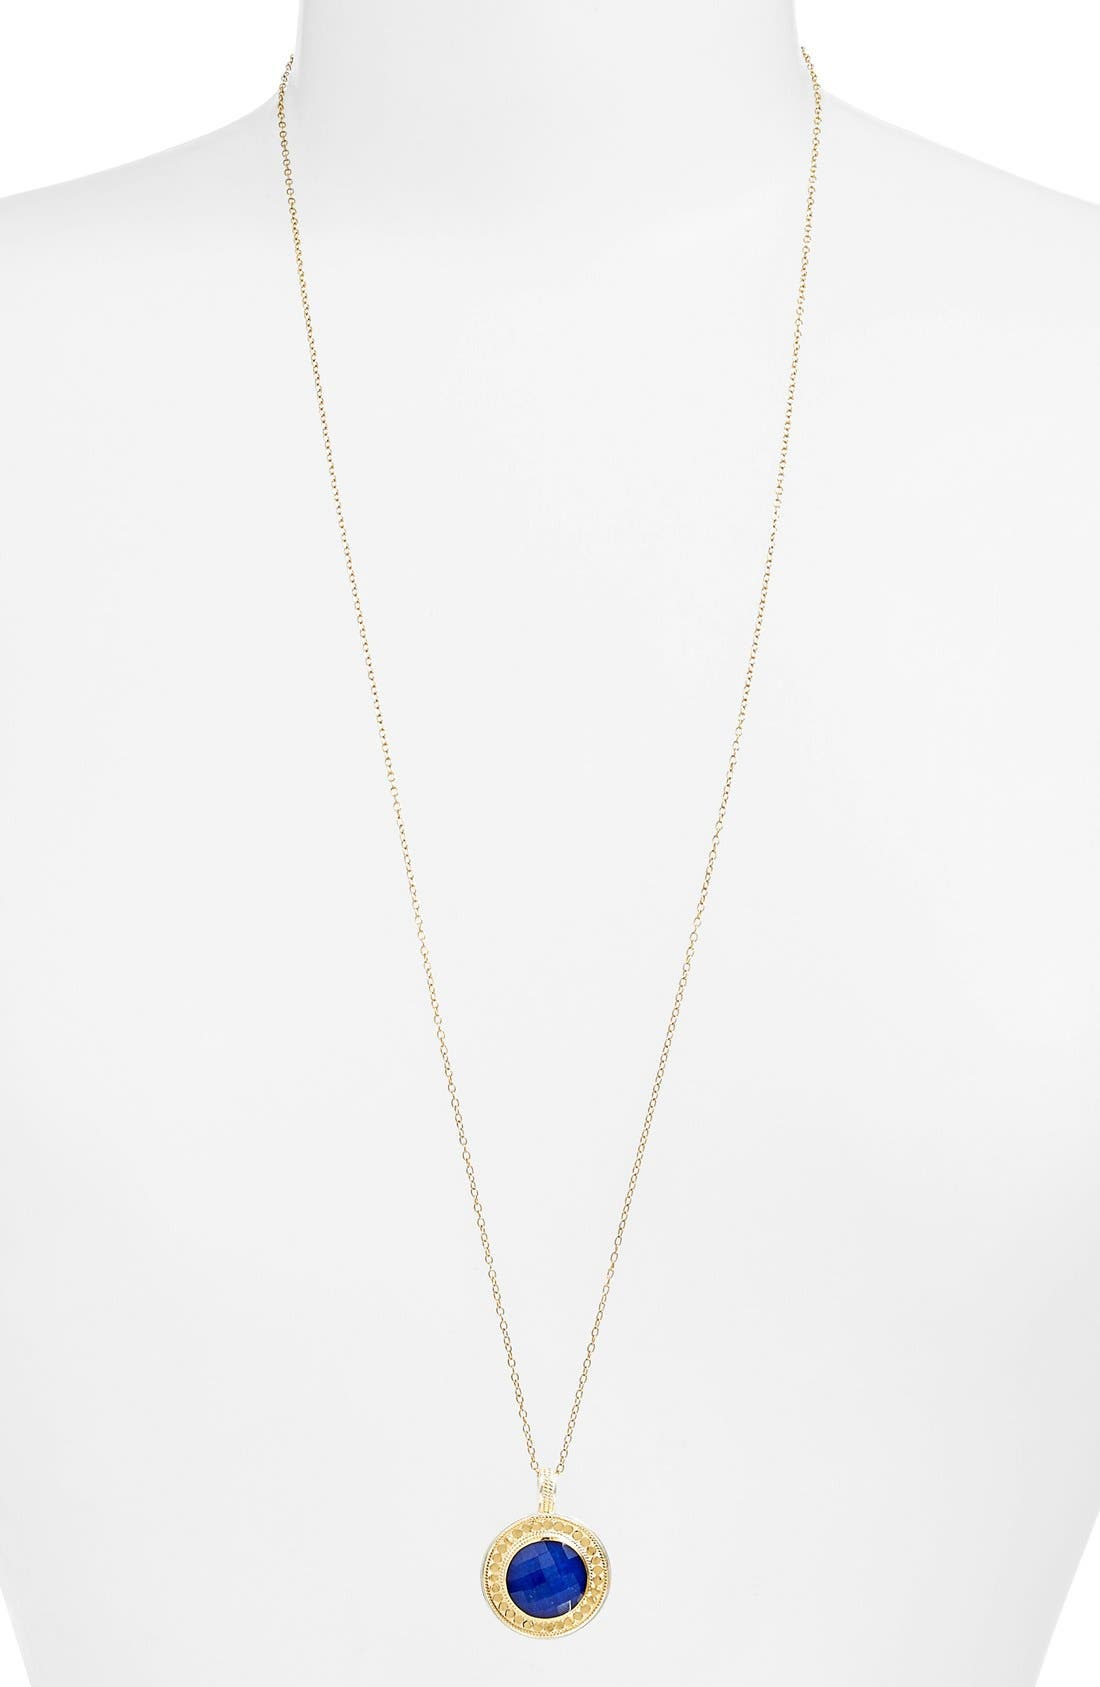 Main Image - Anna Beck 'Gili' Green Onyx Pendant Necklace (Nordstrom Exclusive)